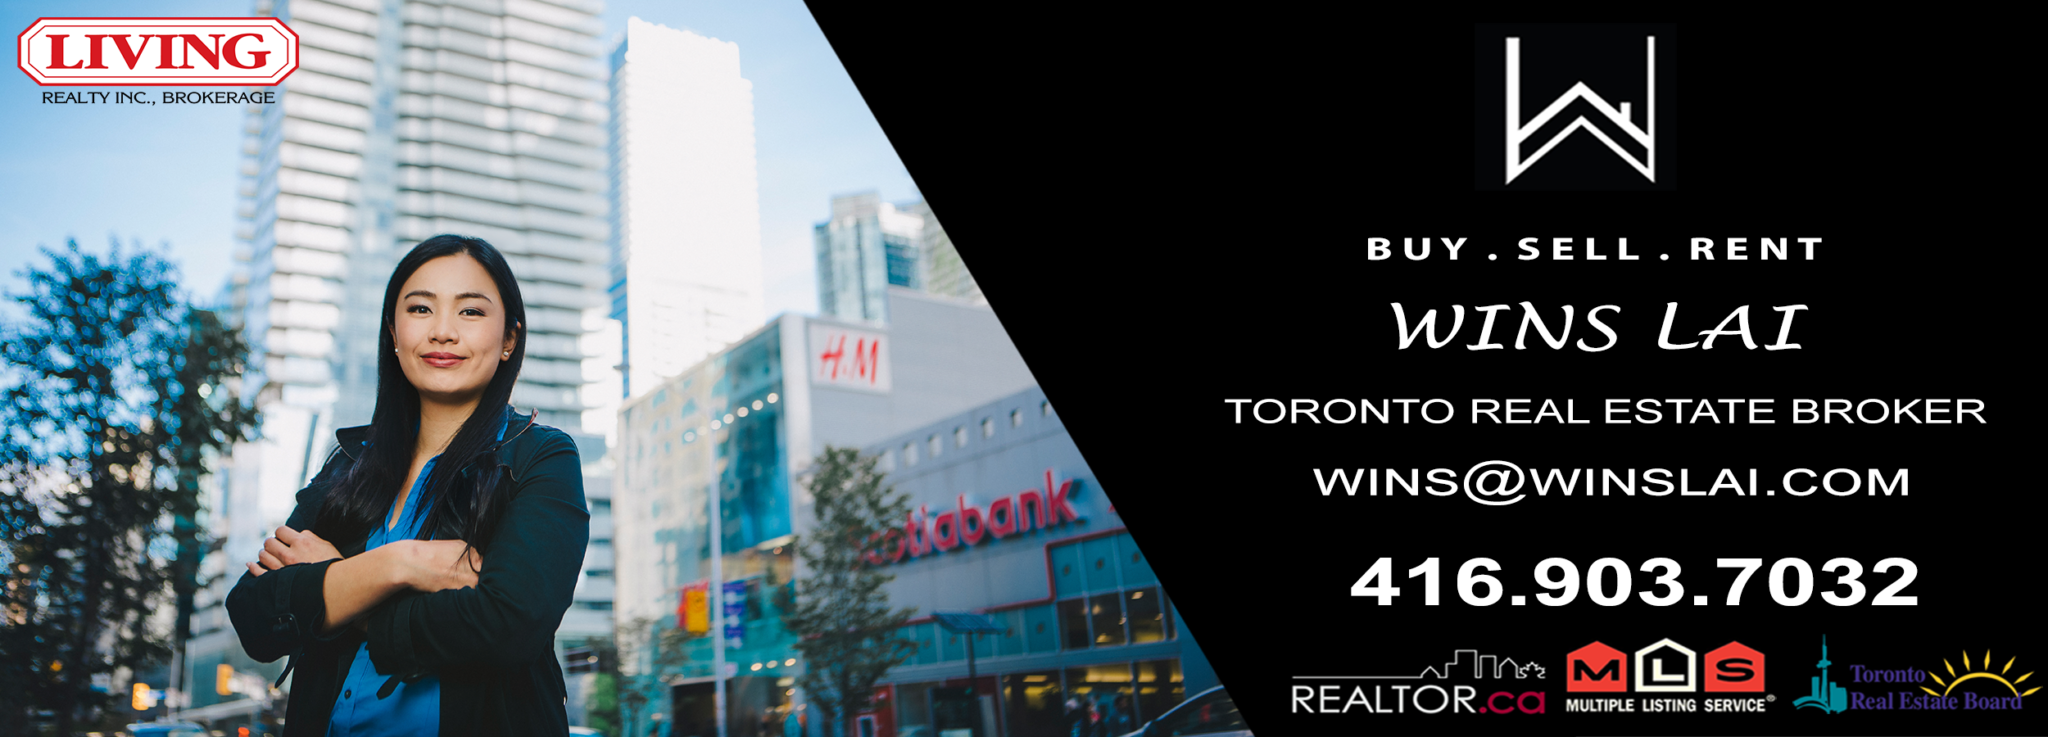 Real estate Agent in Toronto || Listing || Buy , Sell, Rent Downtown